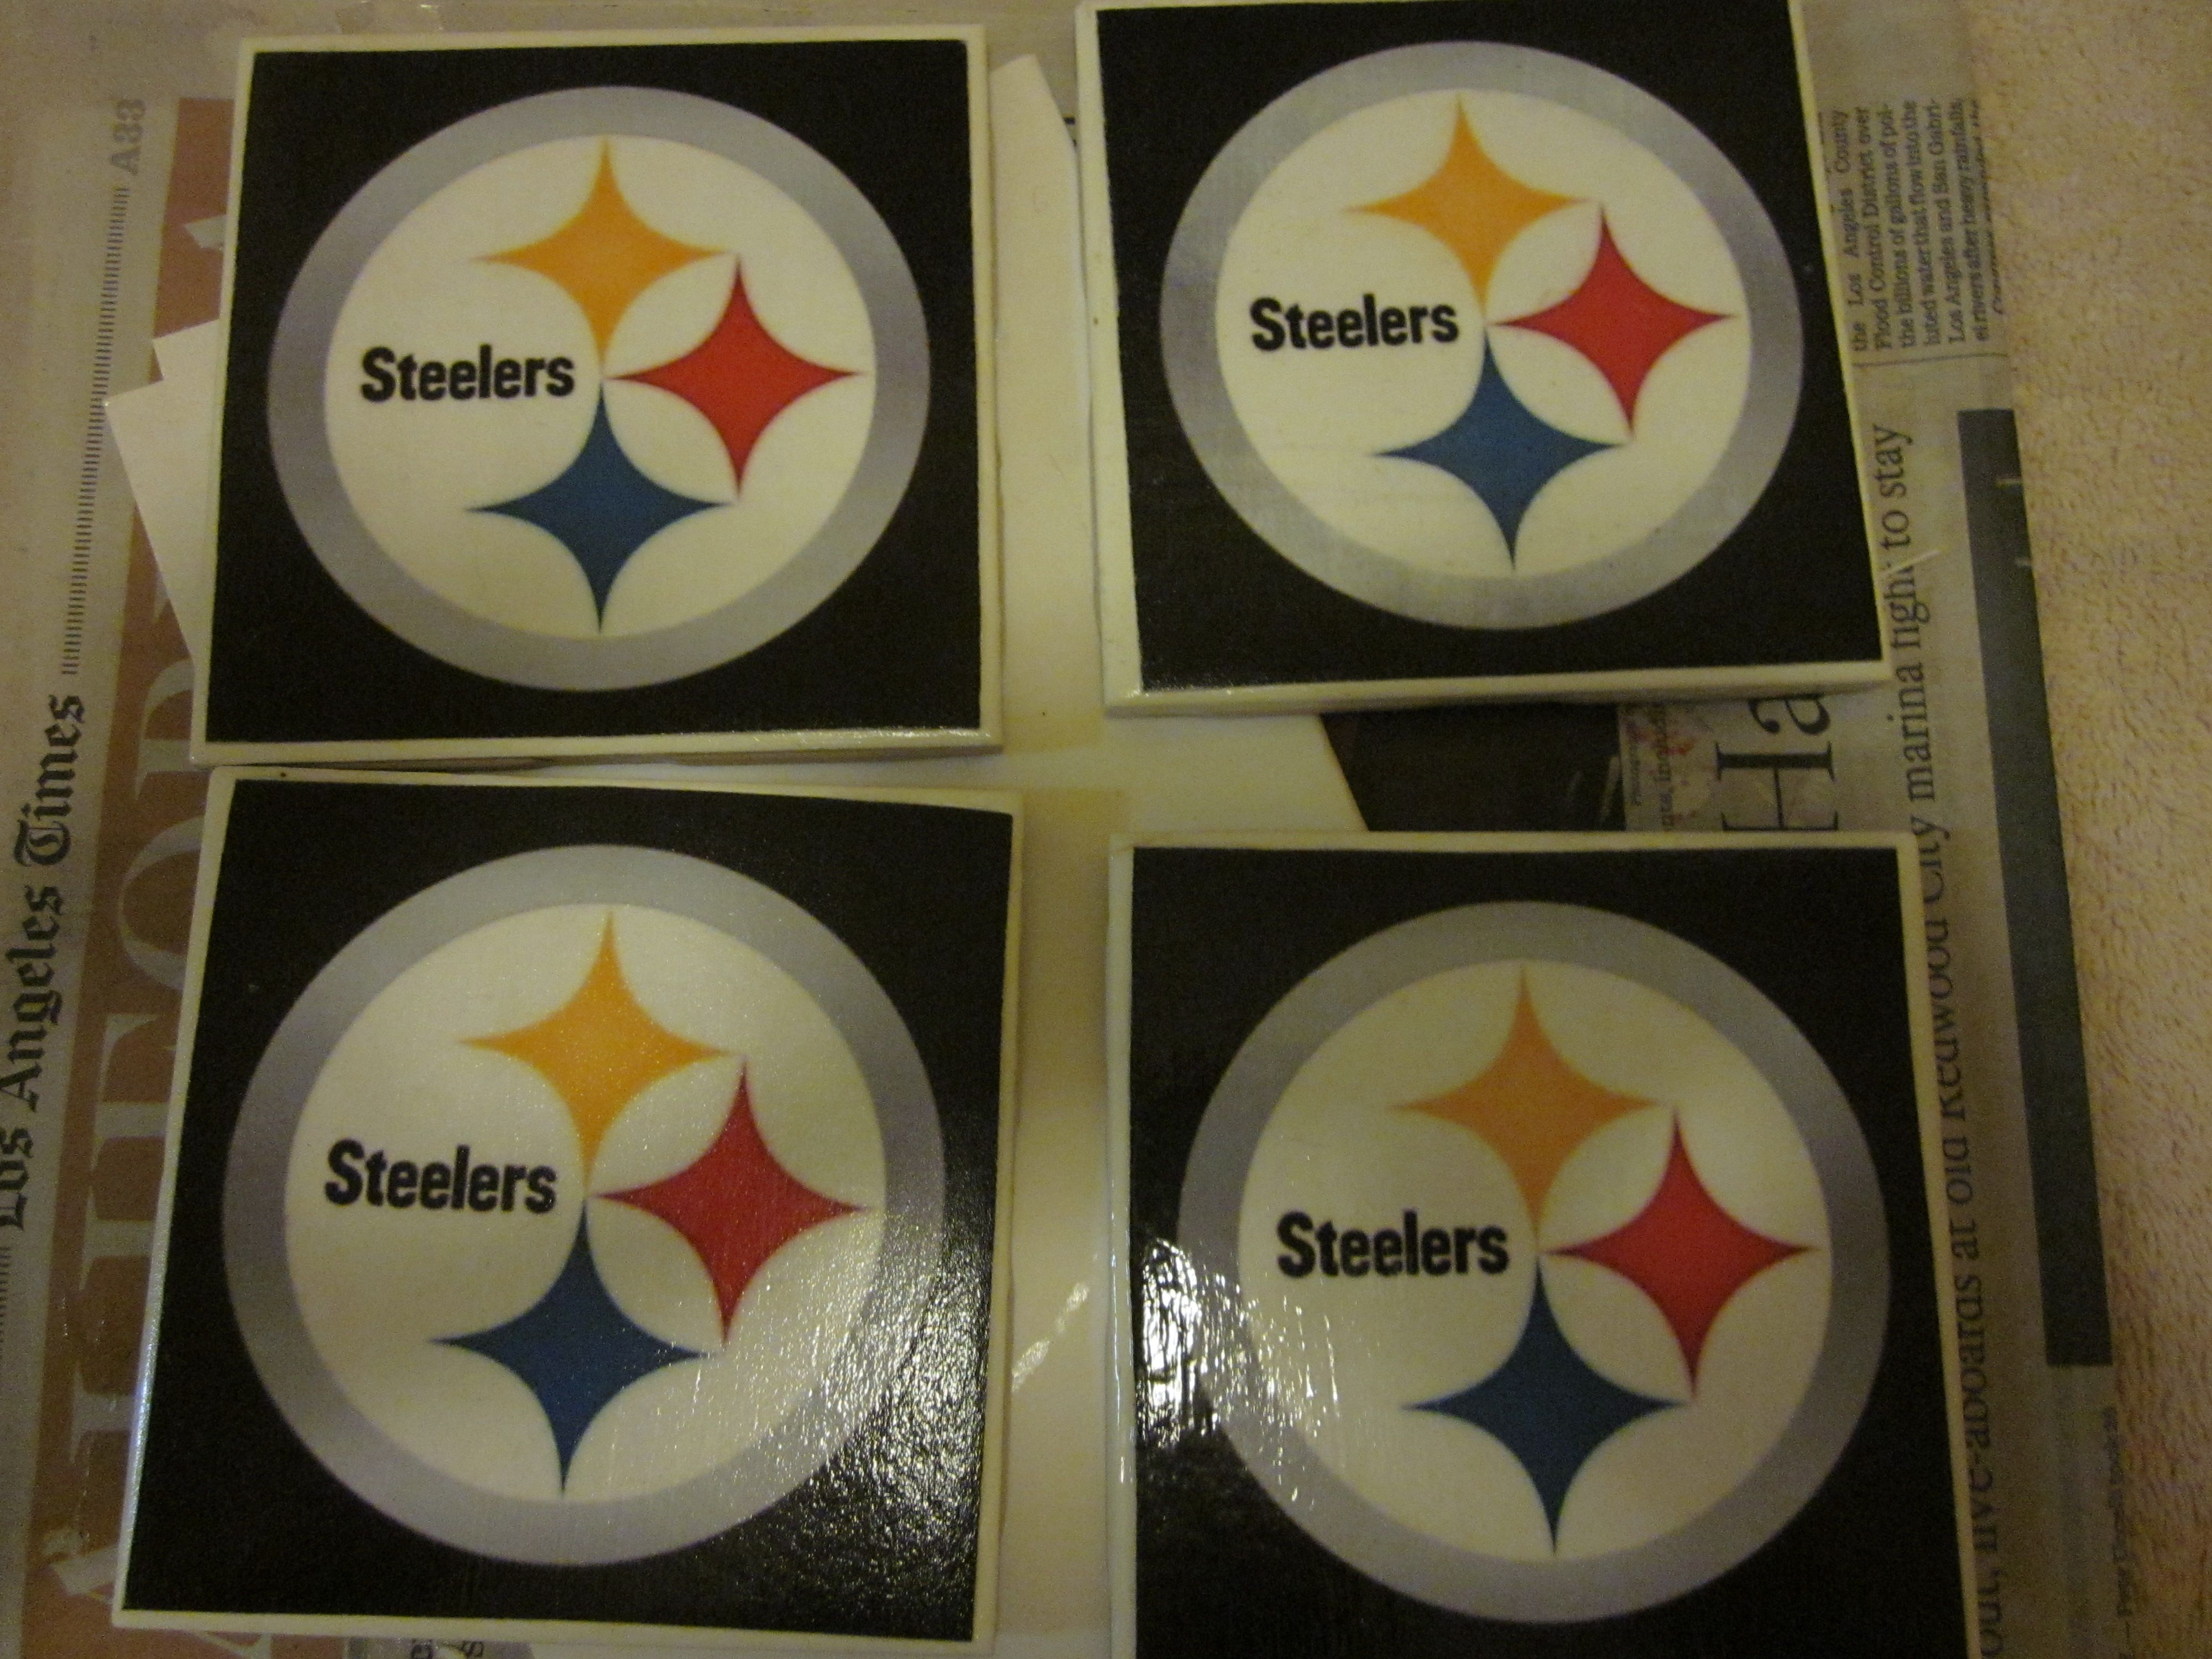 Steelers coasters made from ceramic tile steeler logo print out steelers coasters made from ceramic tile steeler logo print out modge clear coat spray paintceramic dailygadgetfo Image collections